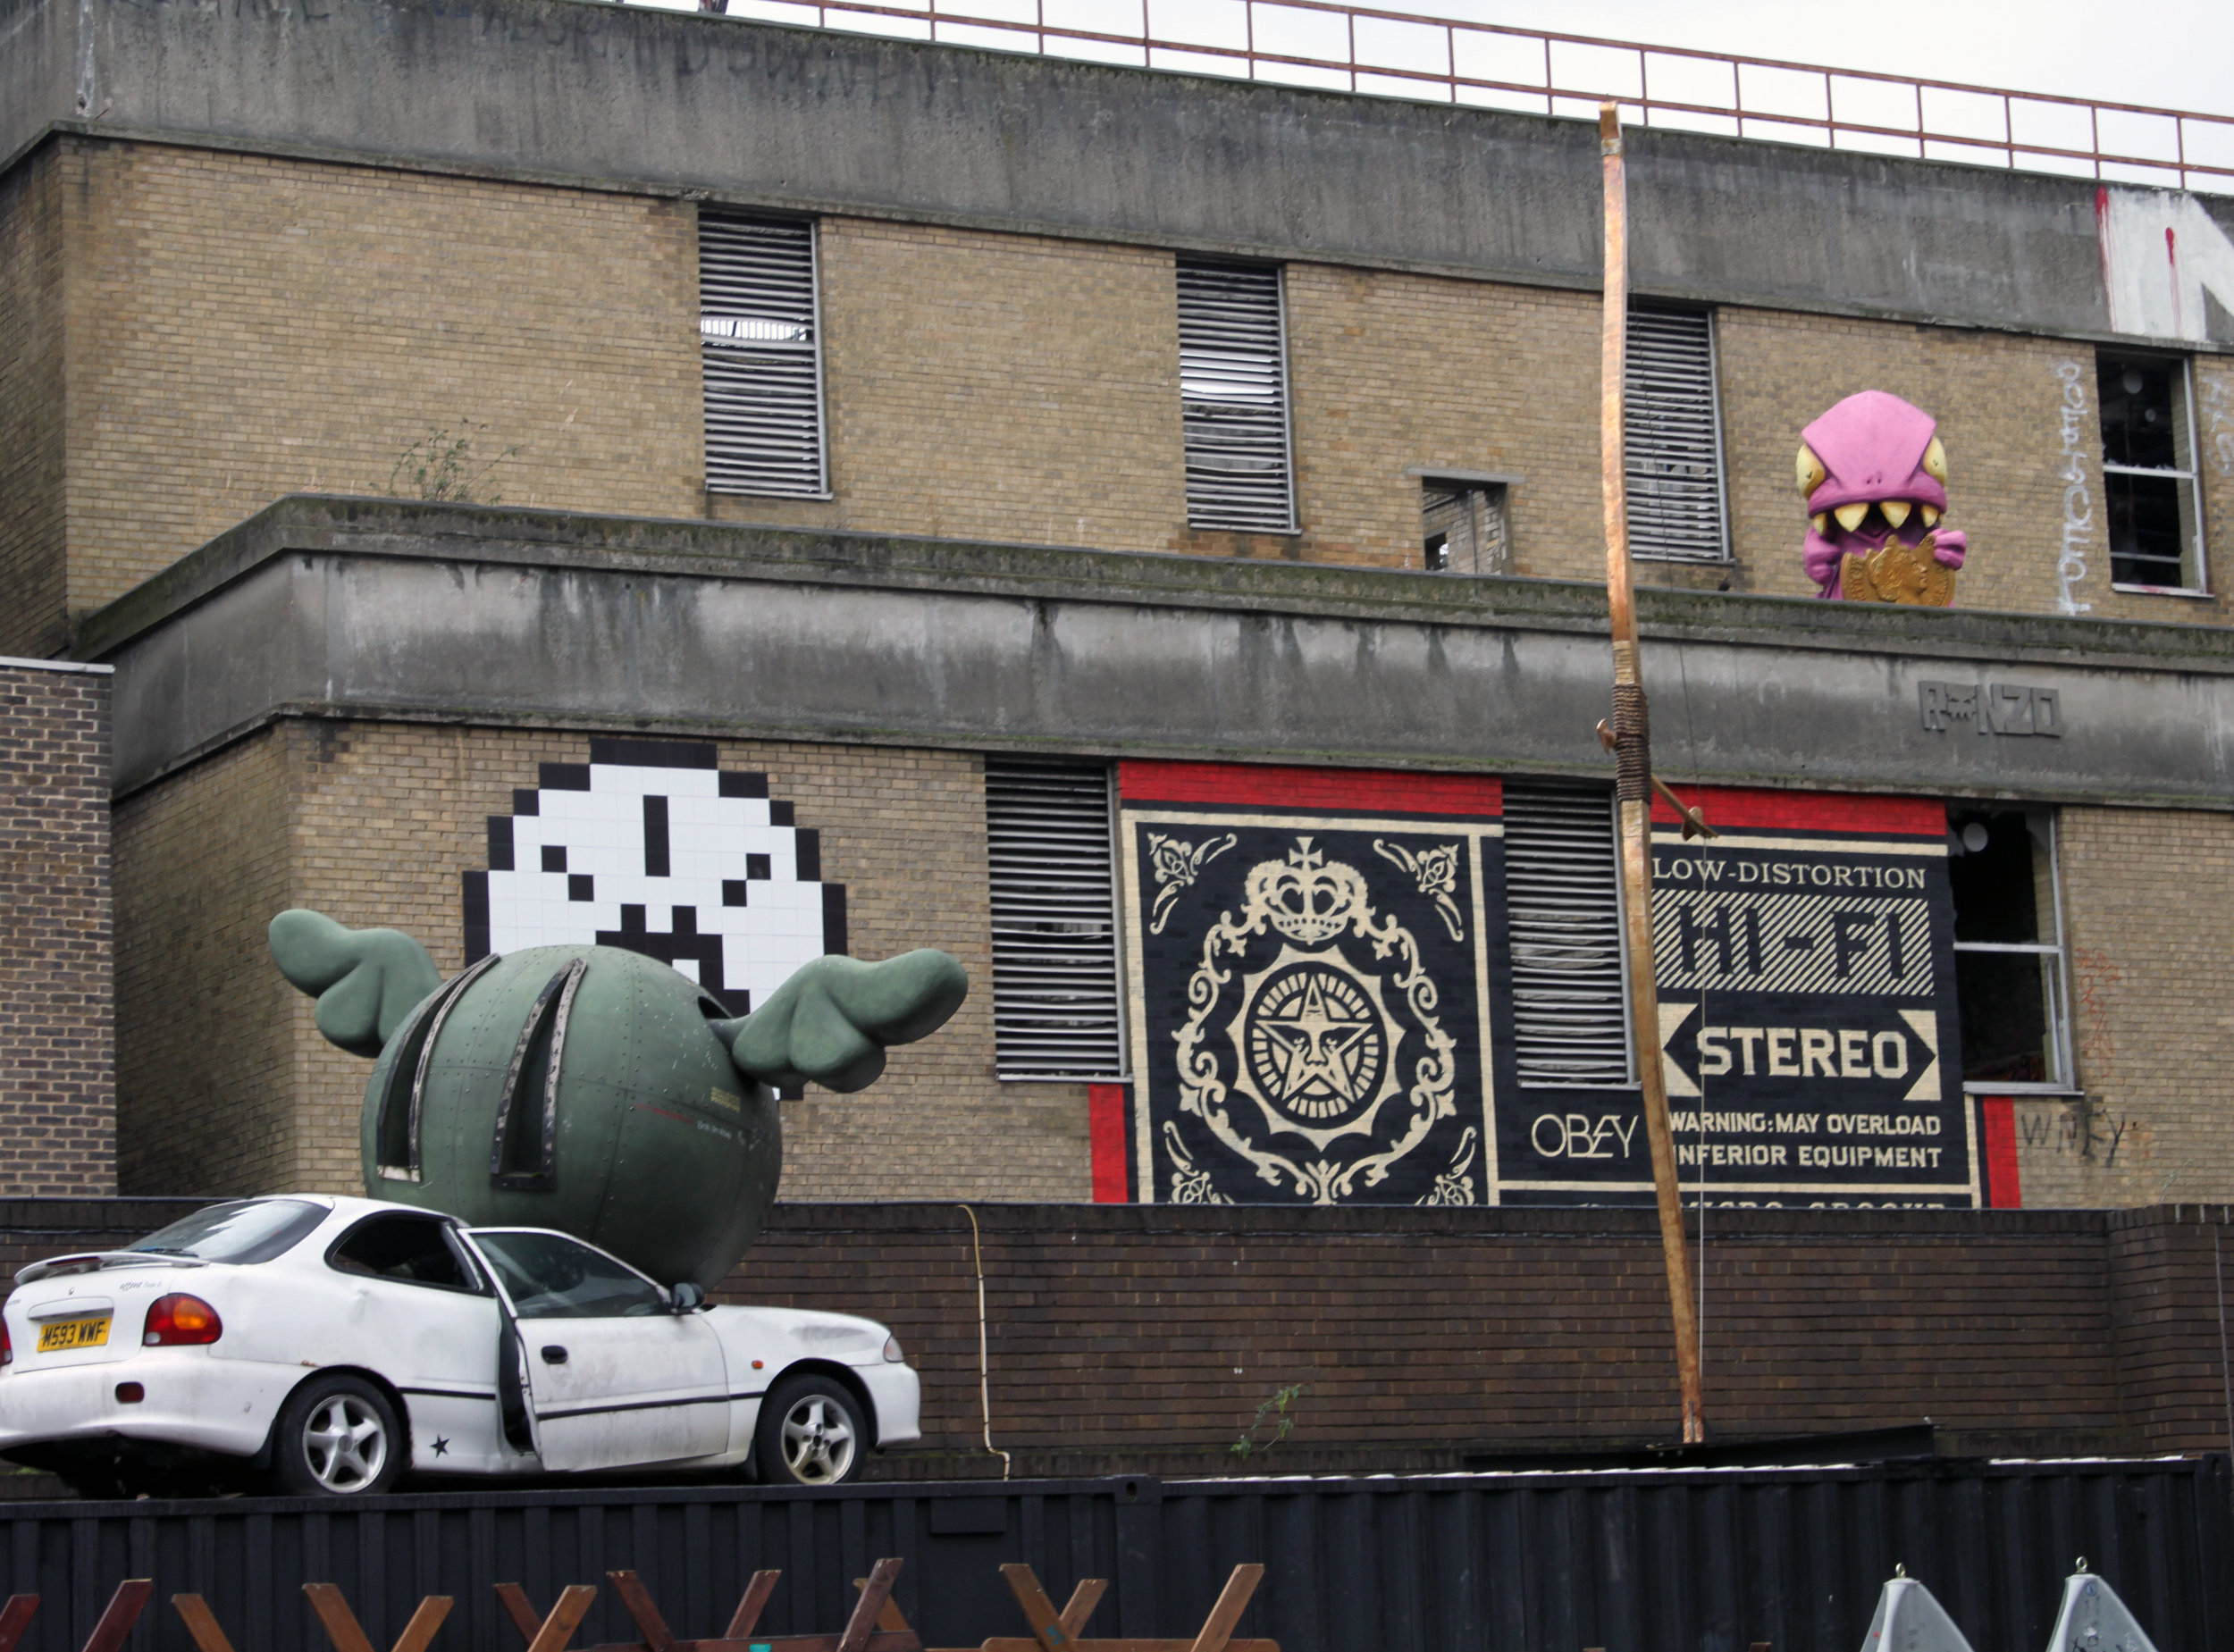 Drone Dog , 2006 in Shoreditch, London by D*Face.